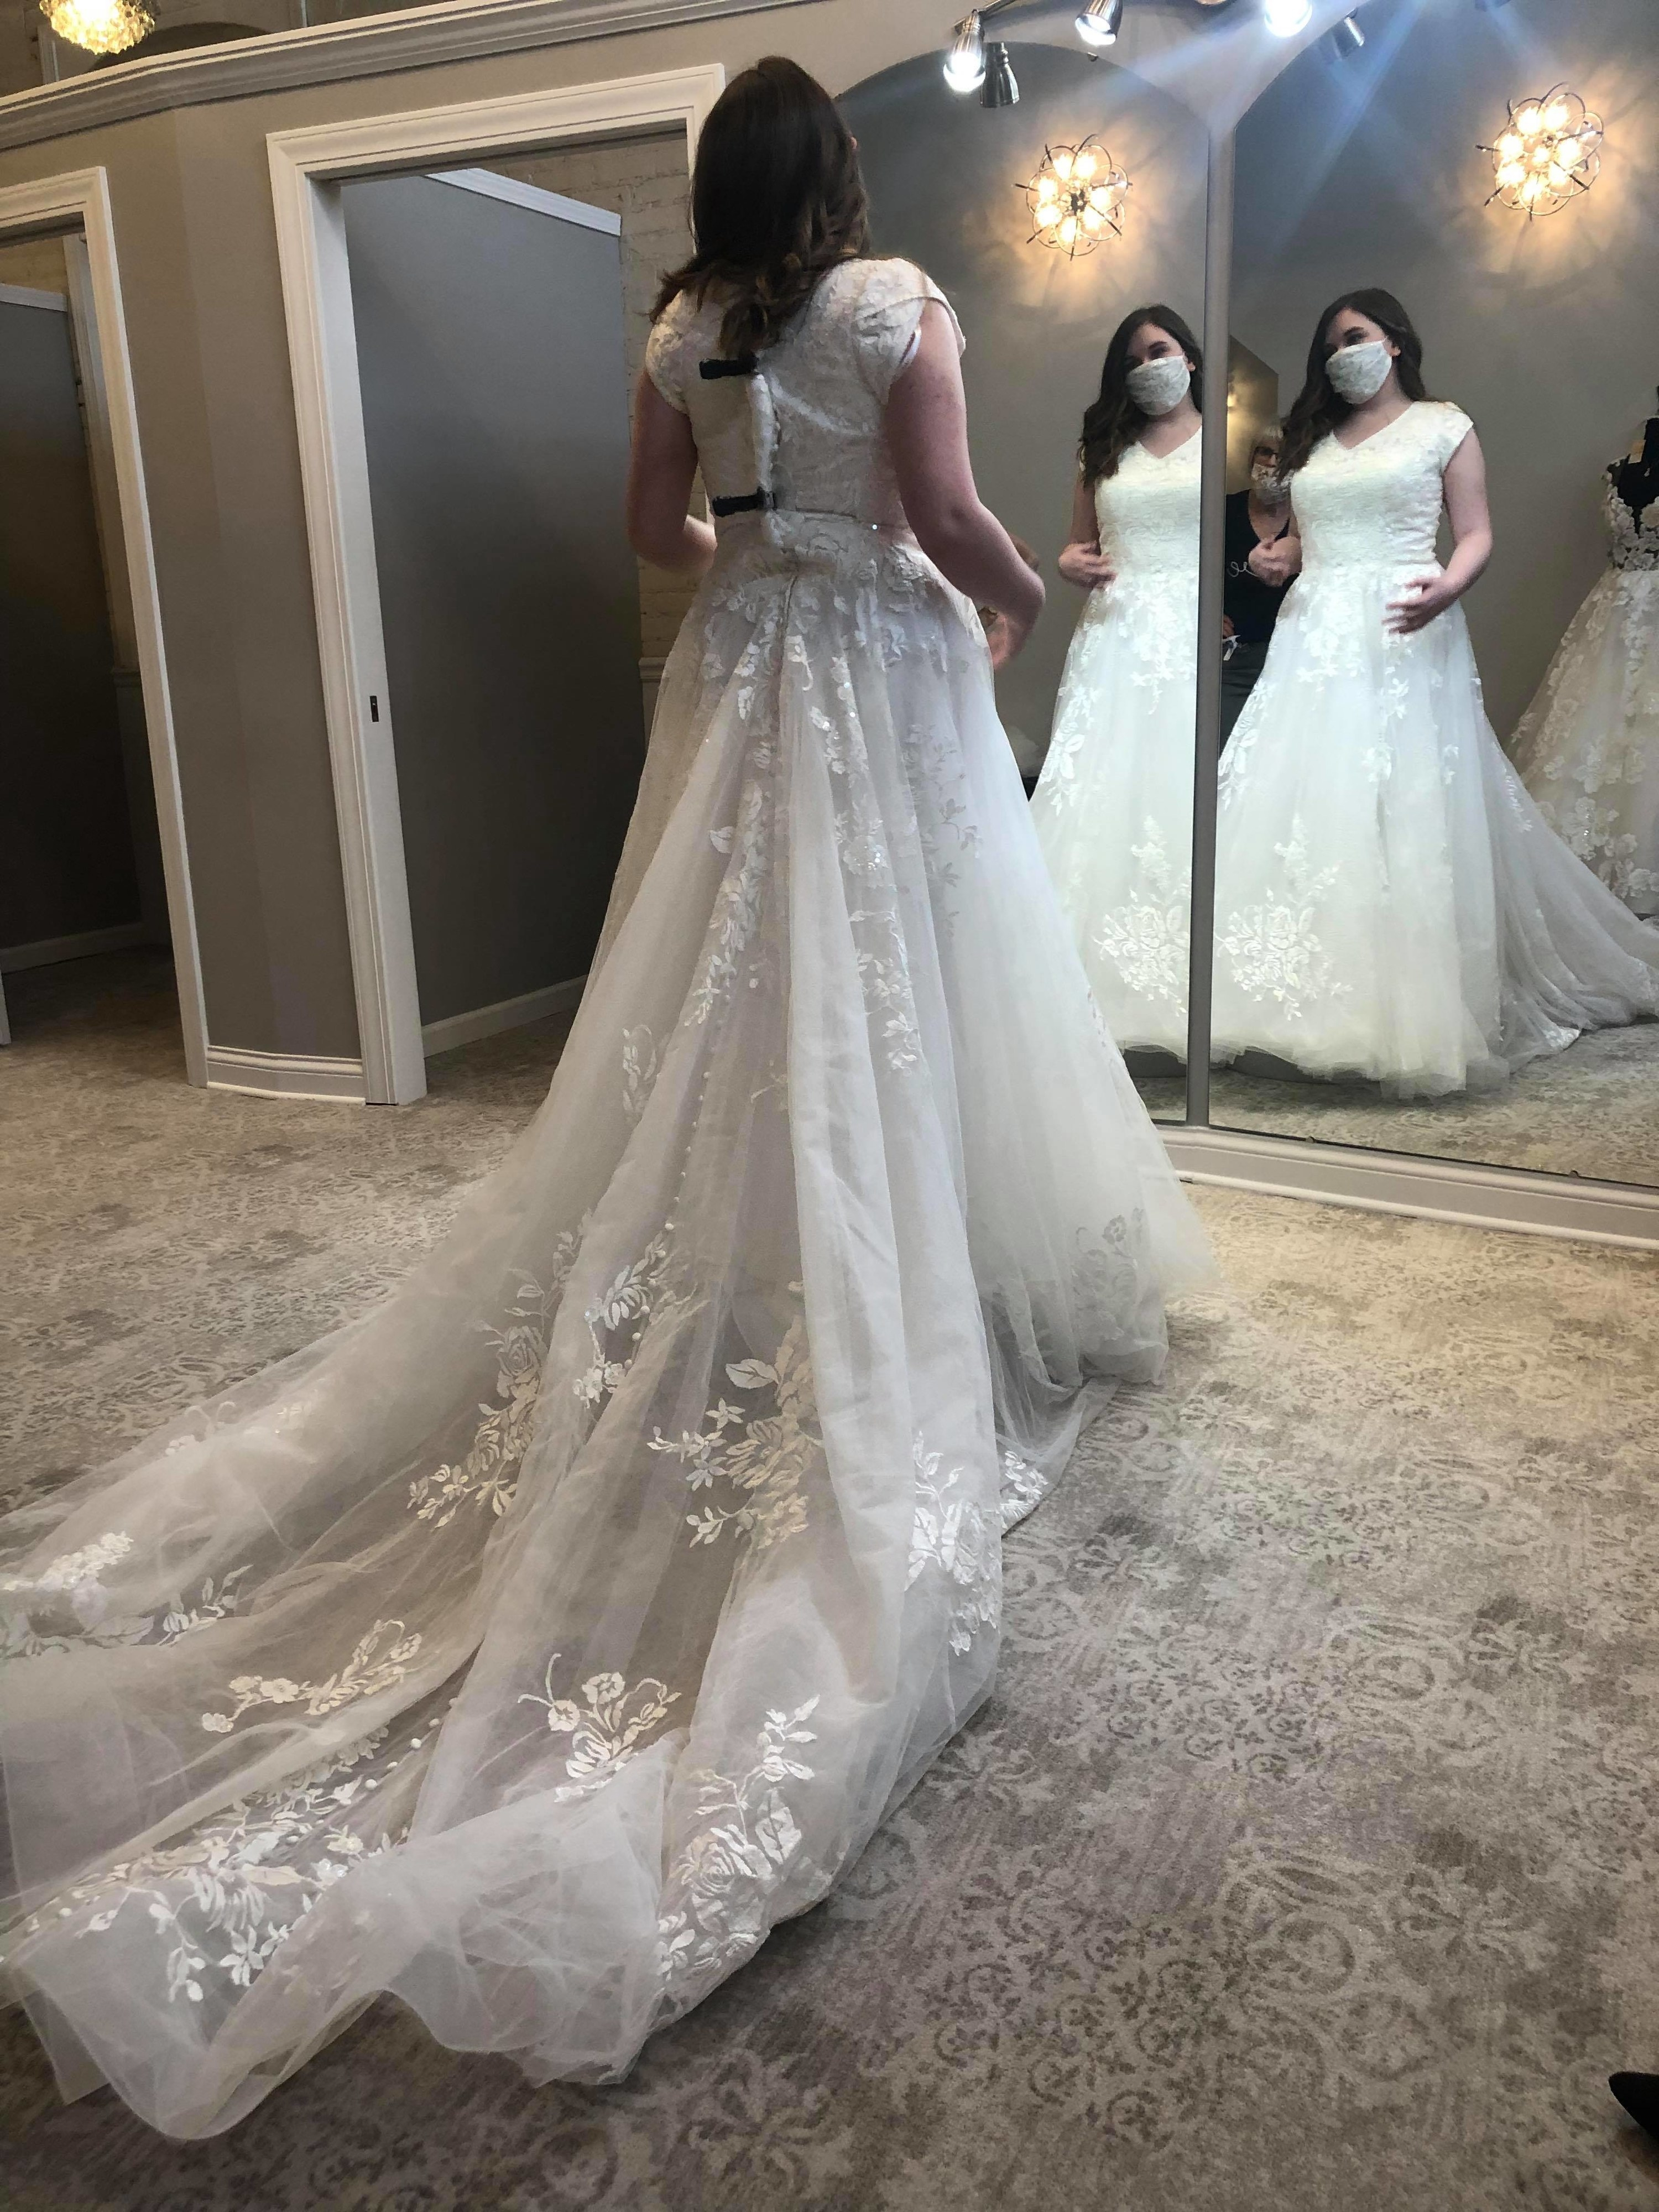 An image of the author trying on a wedding dress